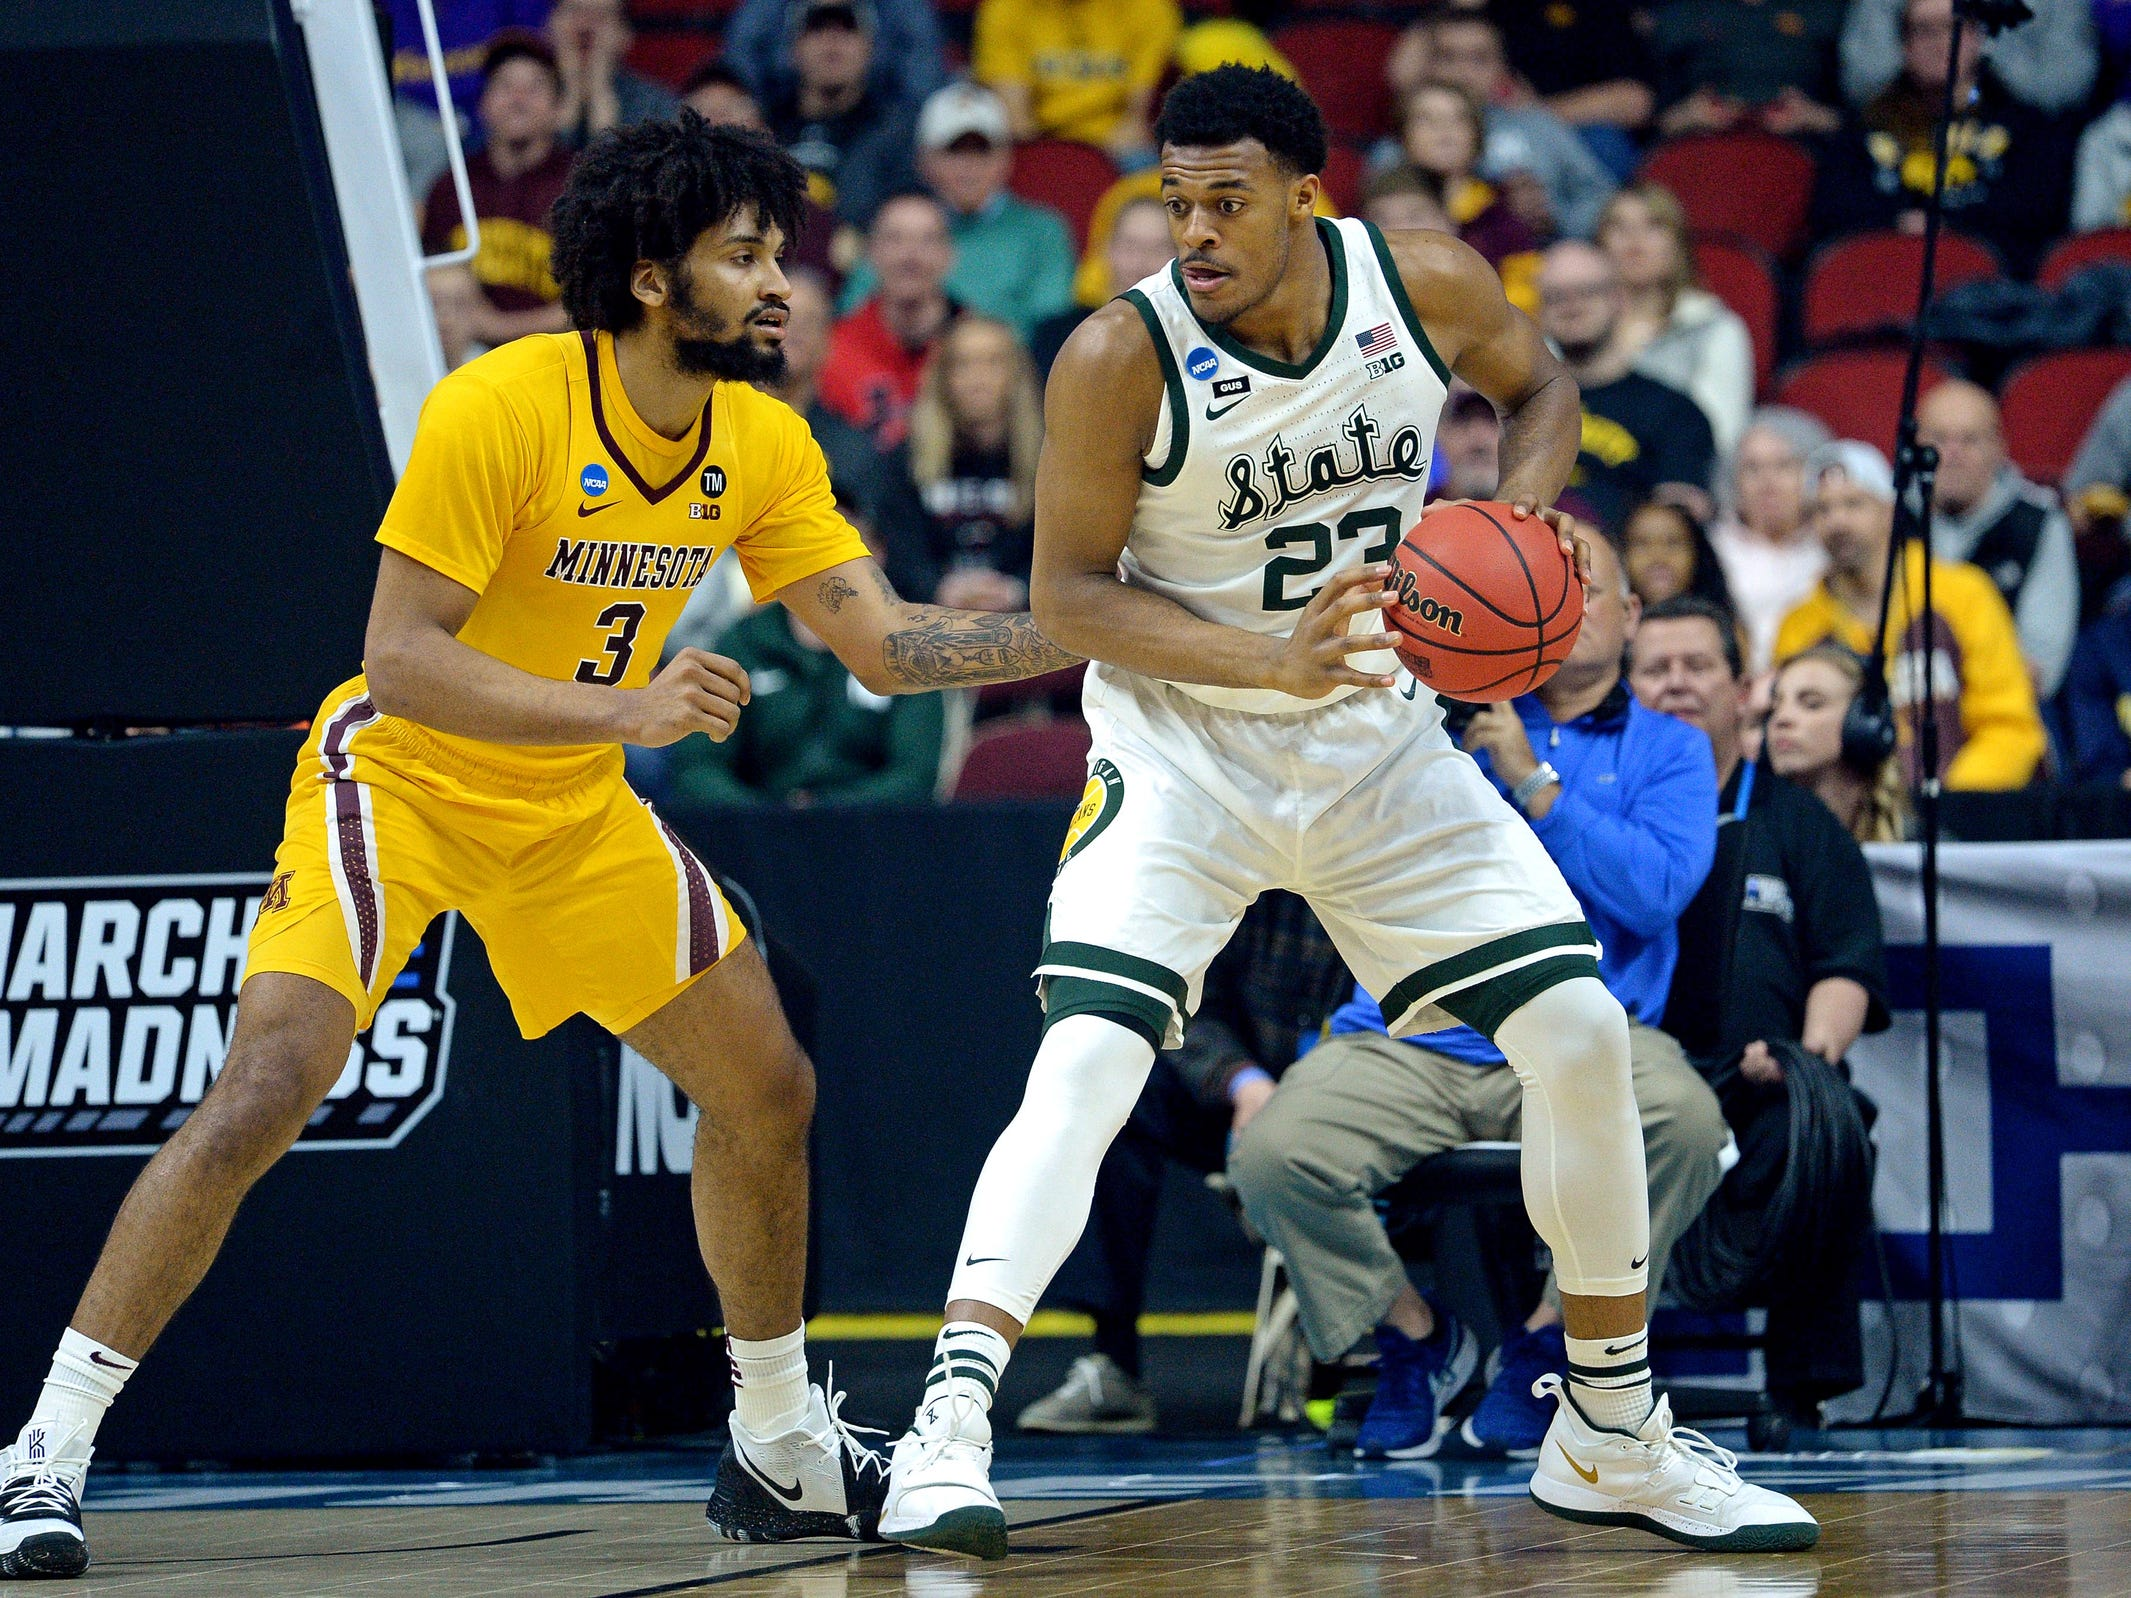 Michigan State forward Xavier Tillman handles the ball against Minnesota forward Jordan Murphy during the first half of a second round NCAA tournament game in Des Moines, Iowa, Saturday, March 23, 2019.